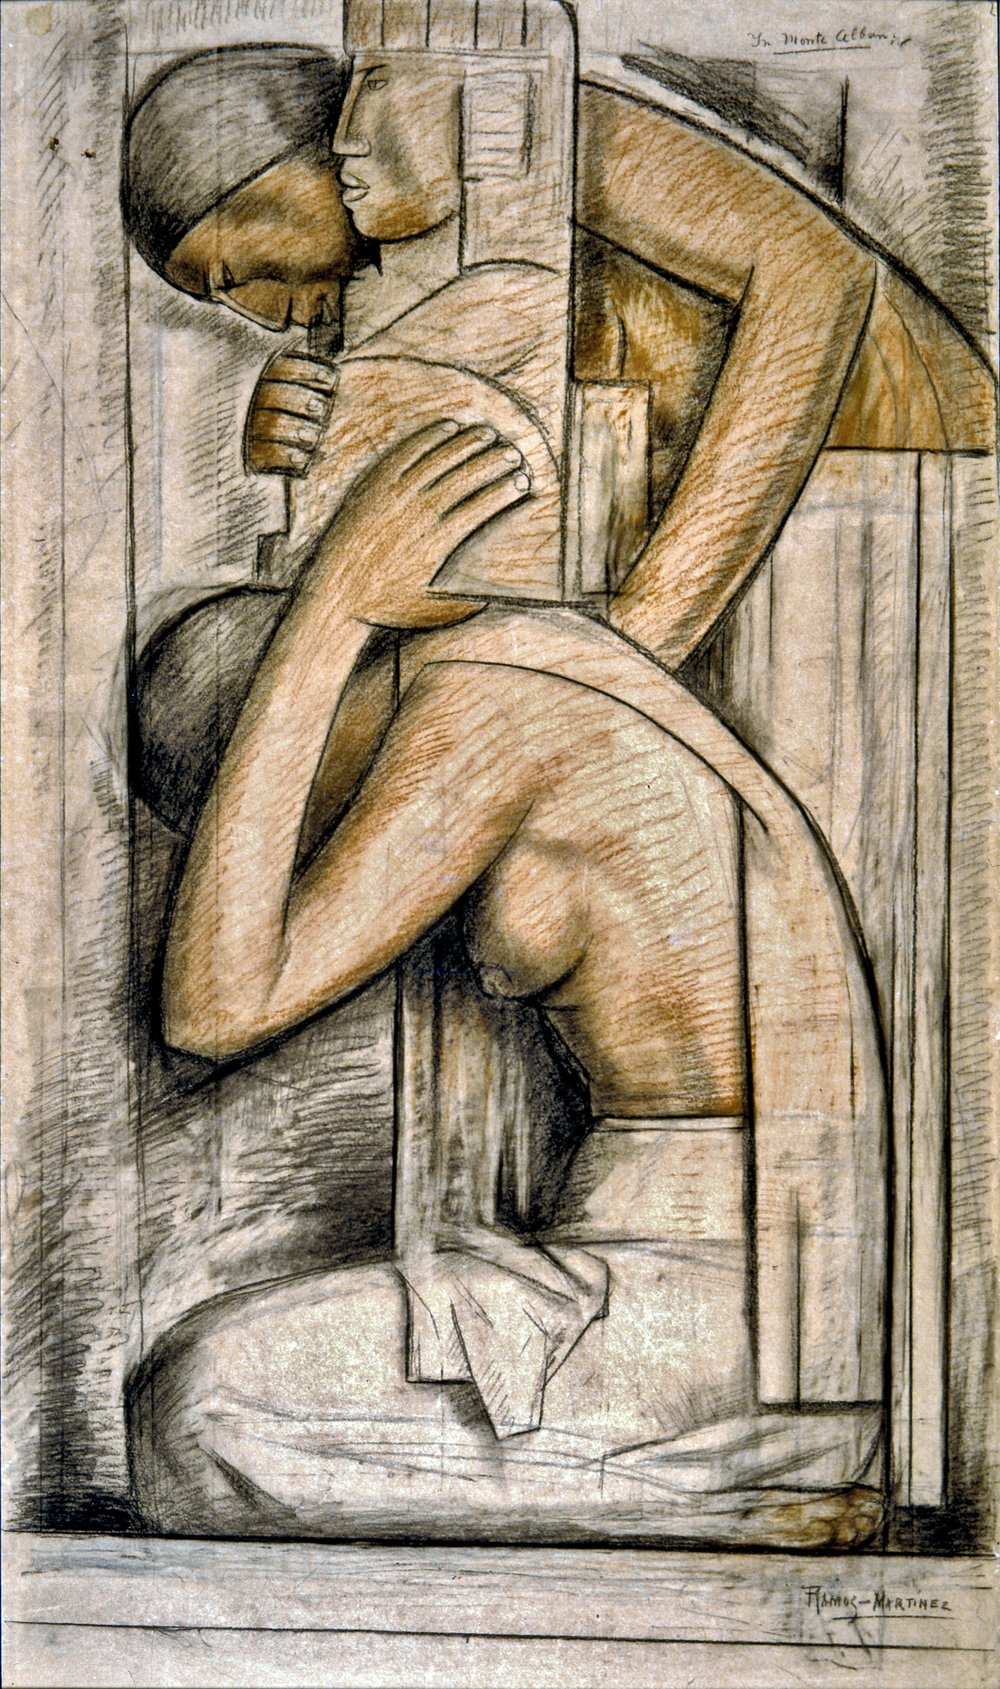 Estudio para Monte Alban / Study for Monte Alban  ca. 1934 charcoal and pastel on paper mounted on board / carbón y pintura al pastel sobre papel sobre tabla 41 x 24 inches; 104.1 x 61 centímetros